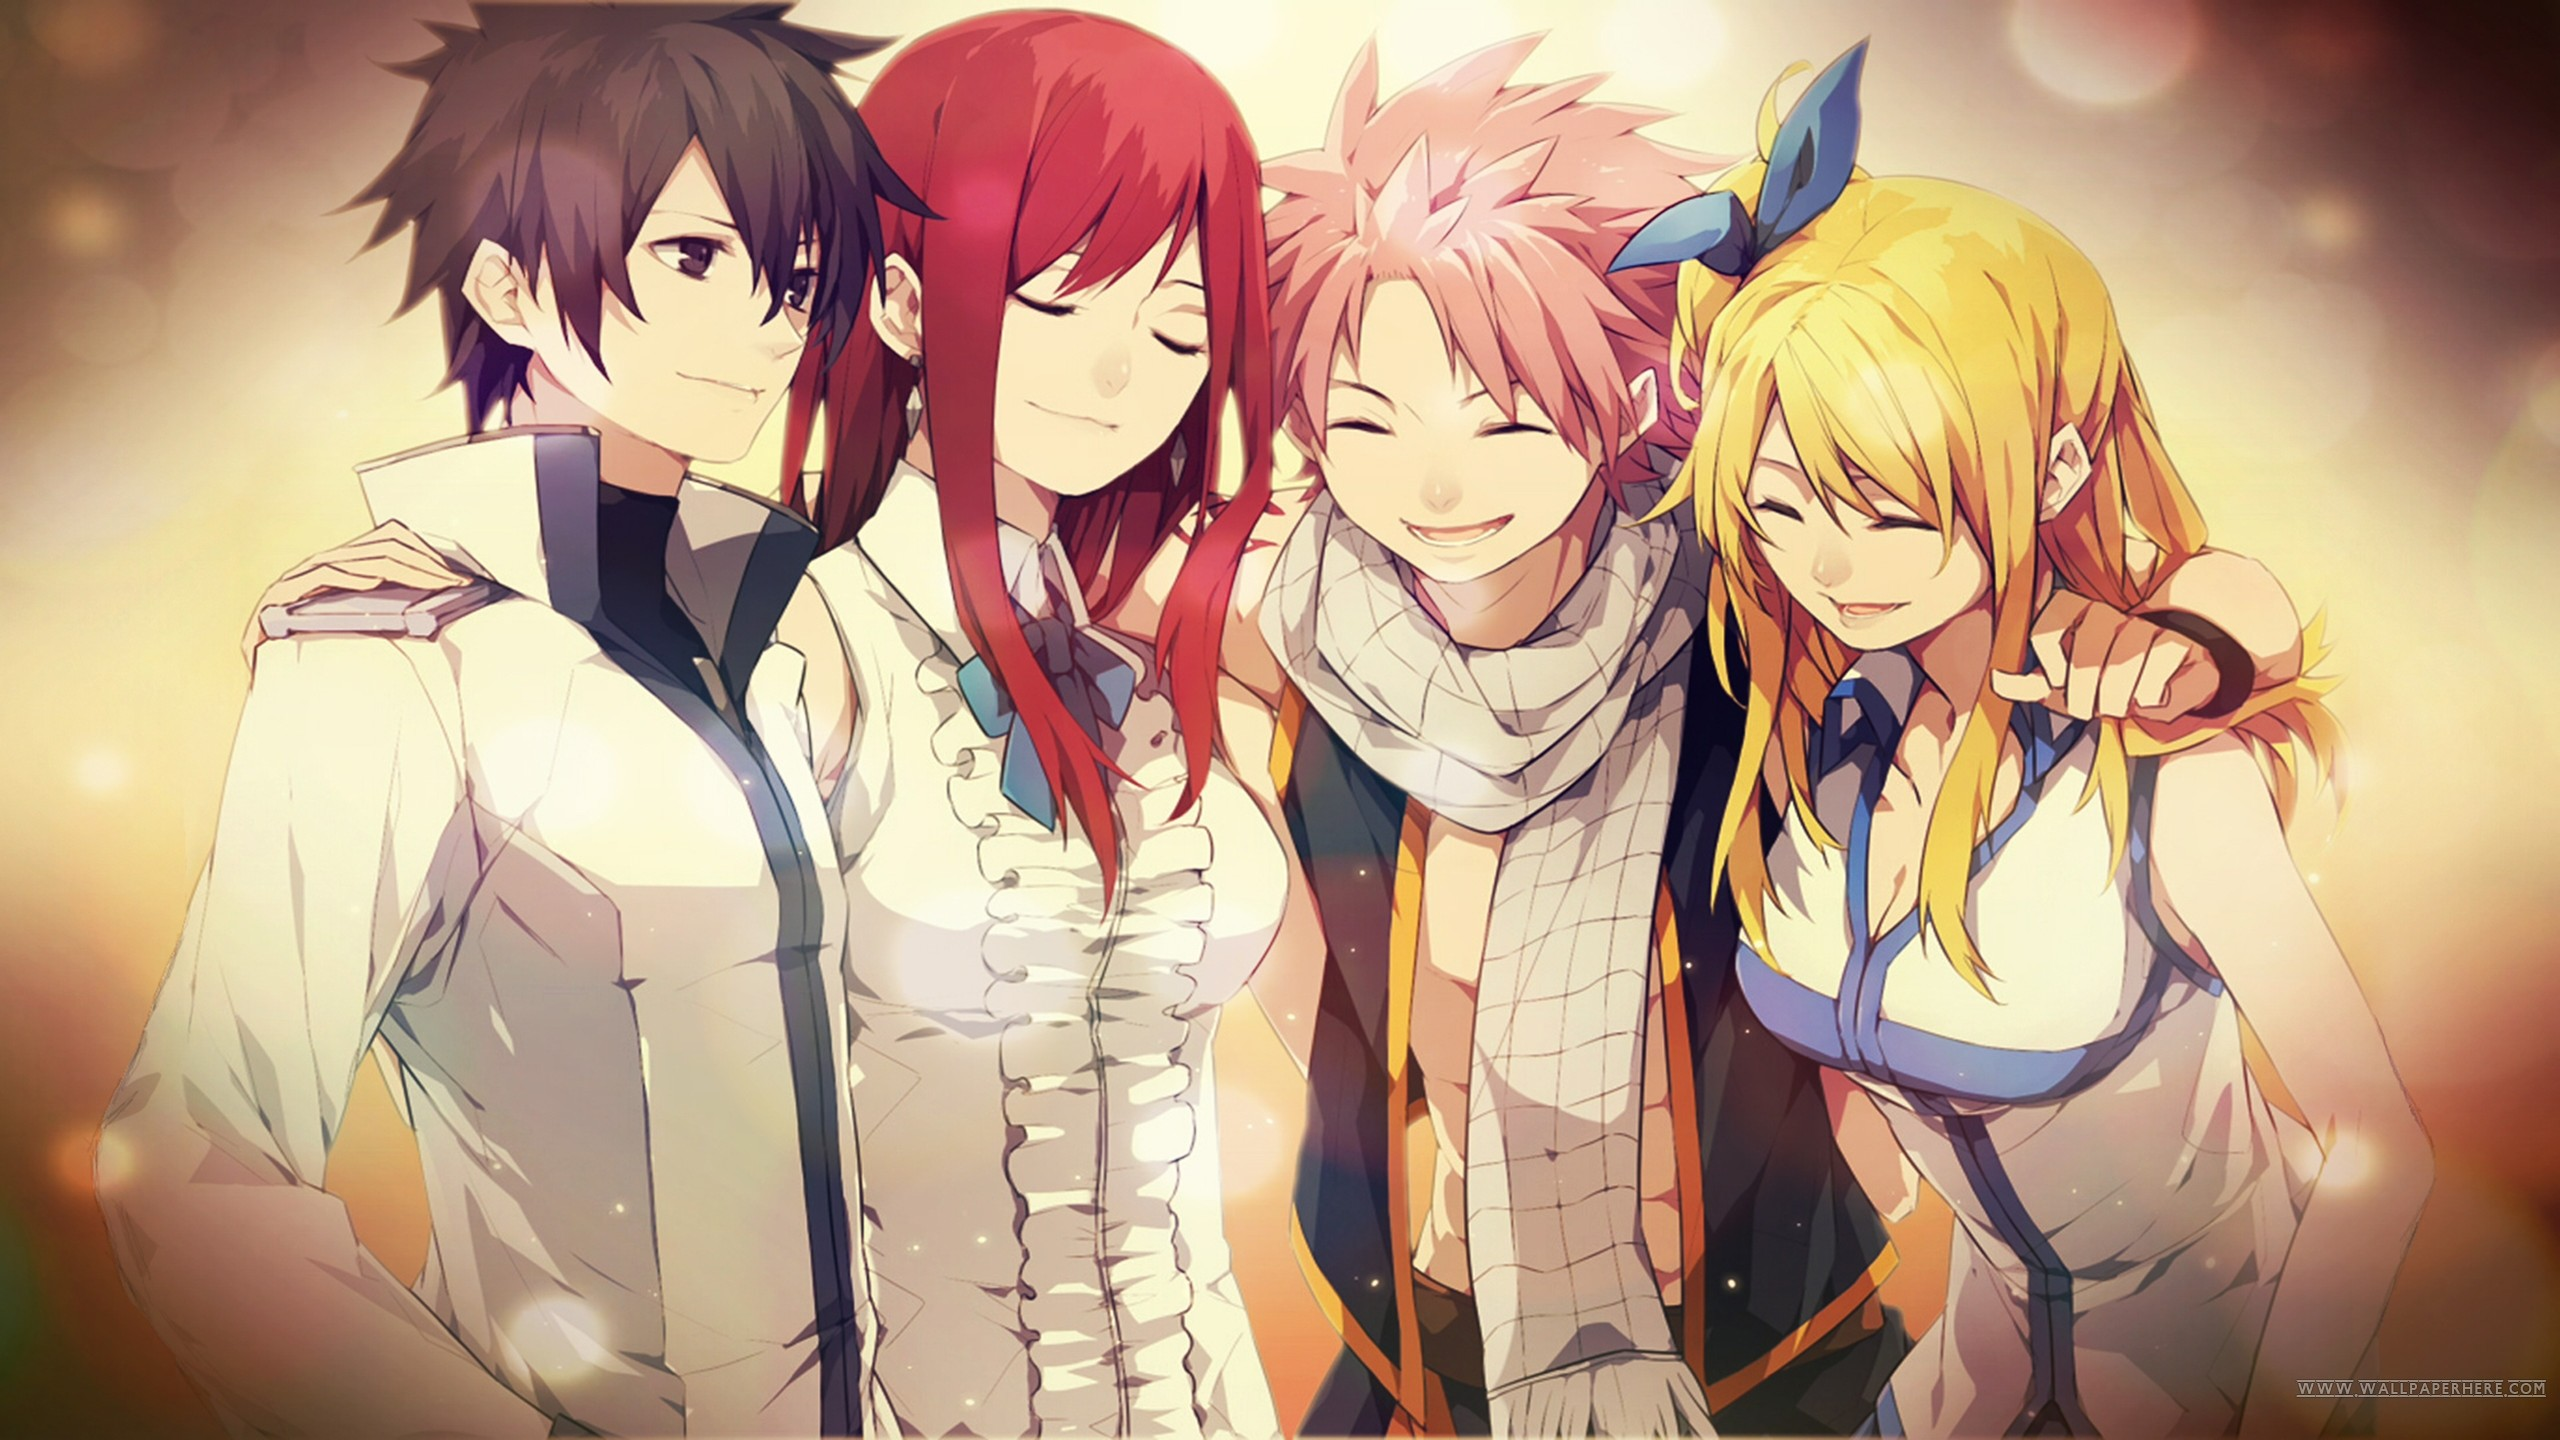 Fairy Tail's Strongest Team ~ Natsu Dragneel, Gray Fullbuster, Erza Scarlet  and Lucy Heatfillia